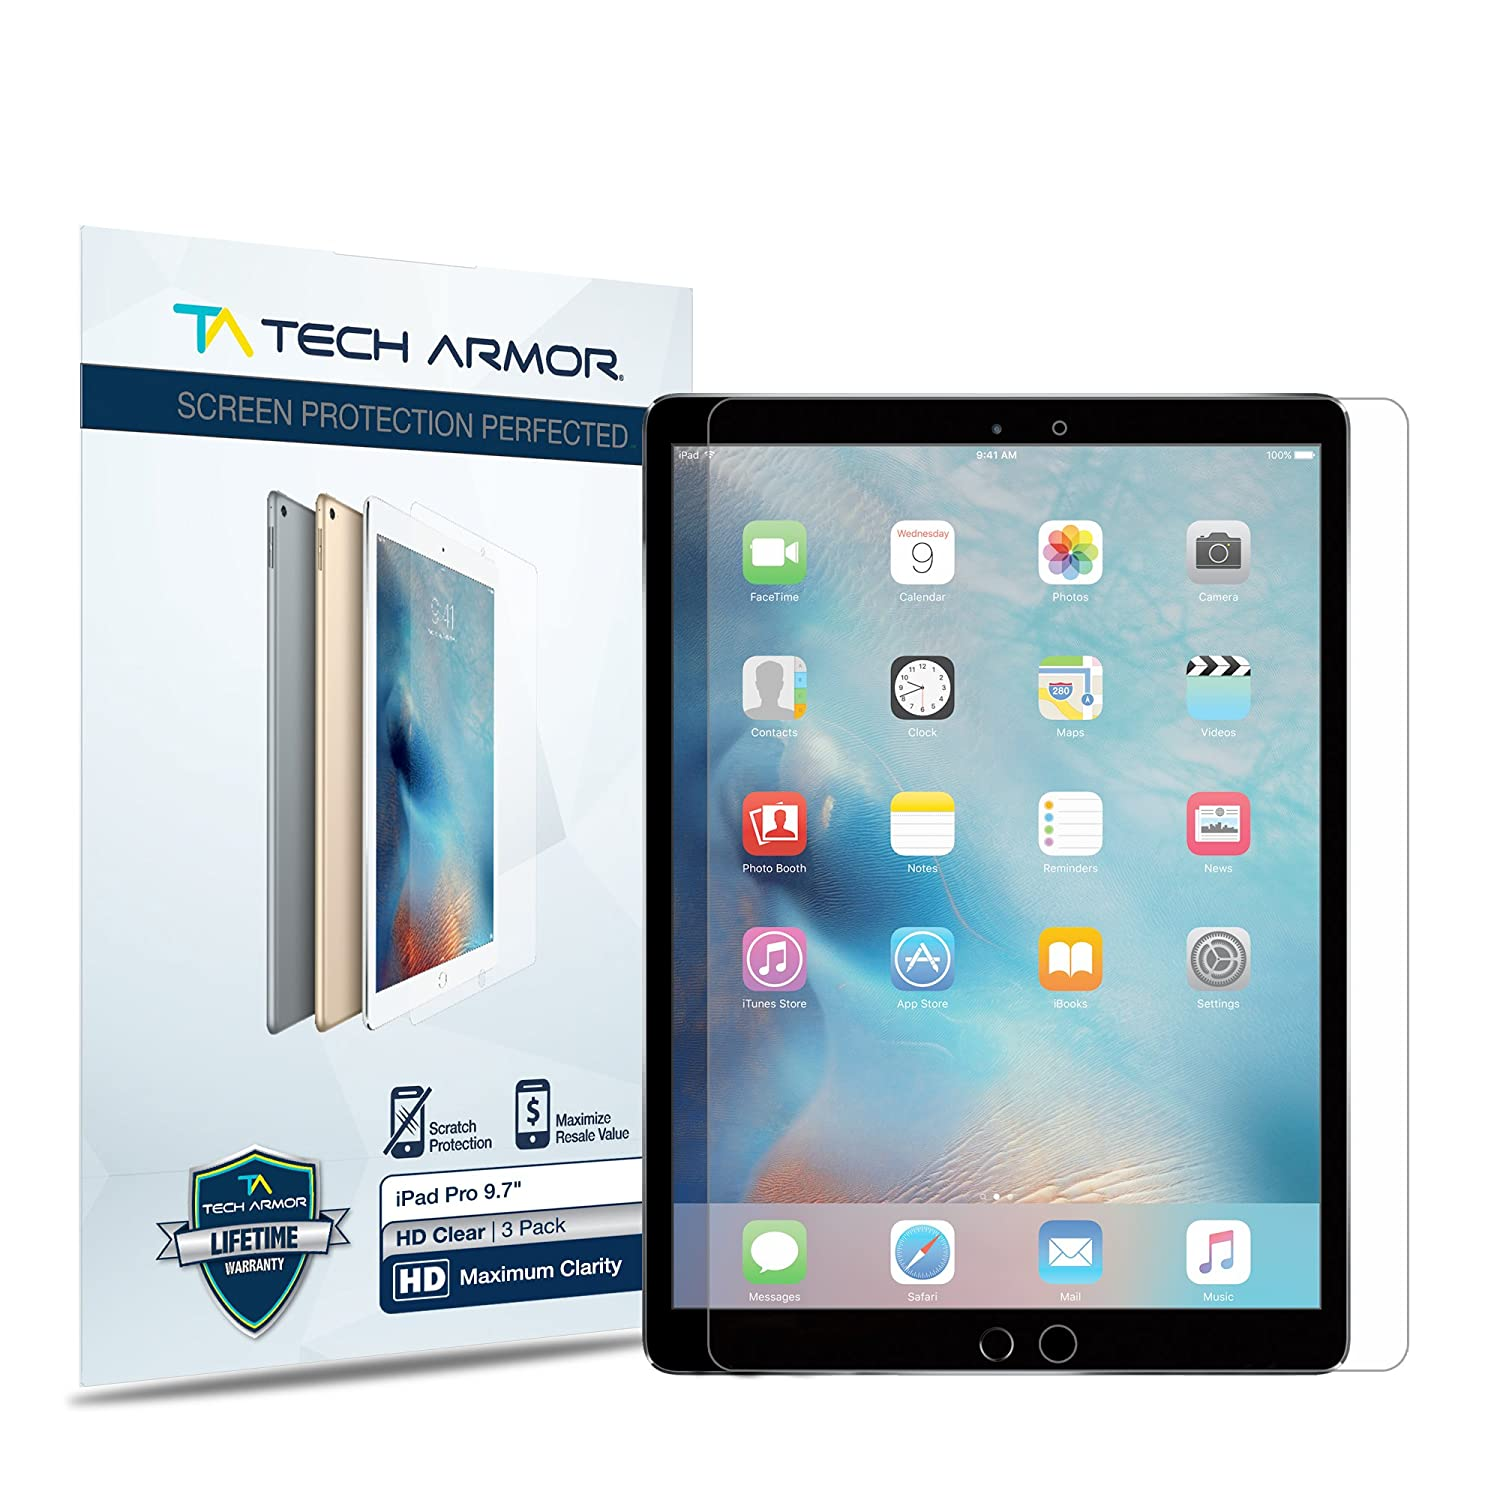 iPad Pro Screen Protector, Tech Armor High Defintion (HD) Clearfor 9.7-inch Apple iPad Pro - Maximum Clarity - Lifetime Warranty (2-Pack)